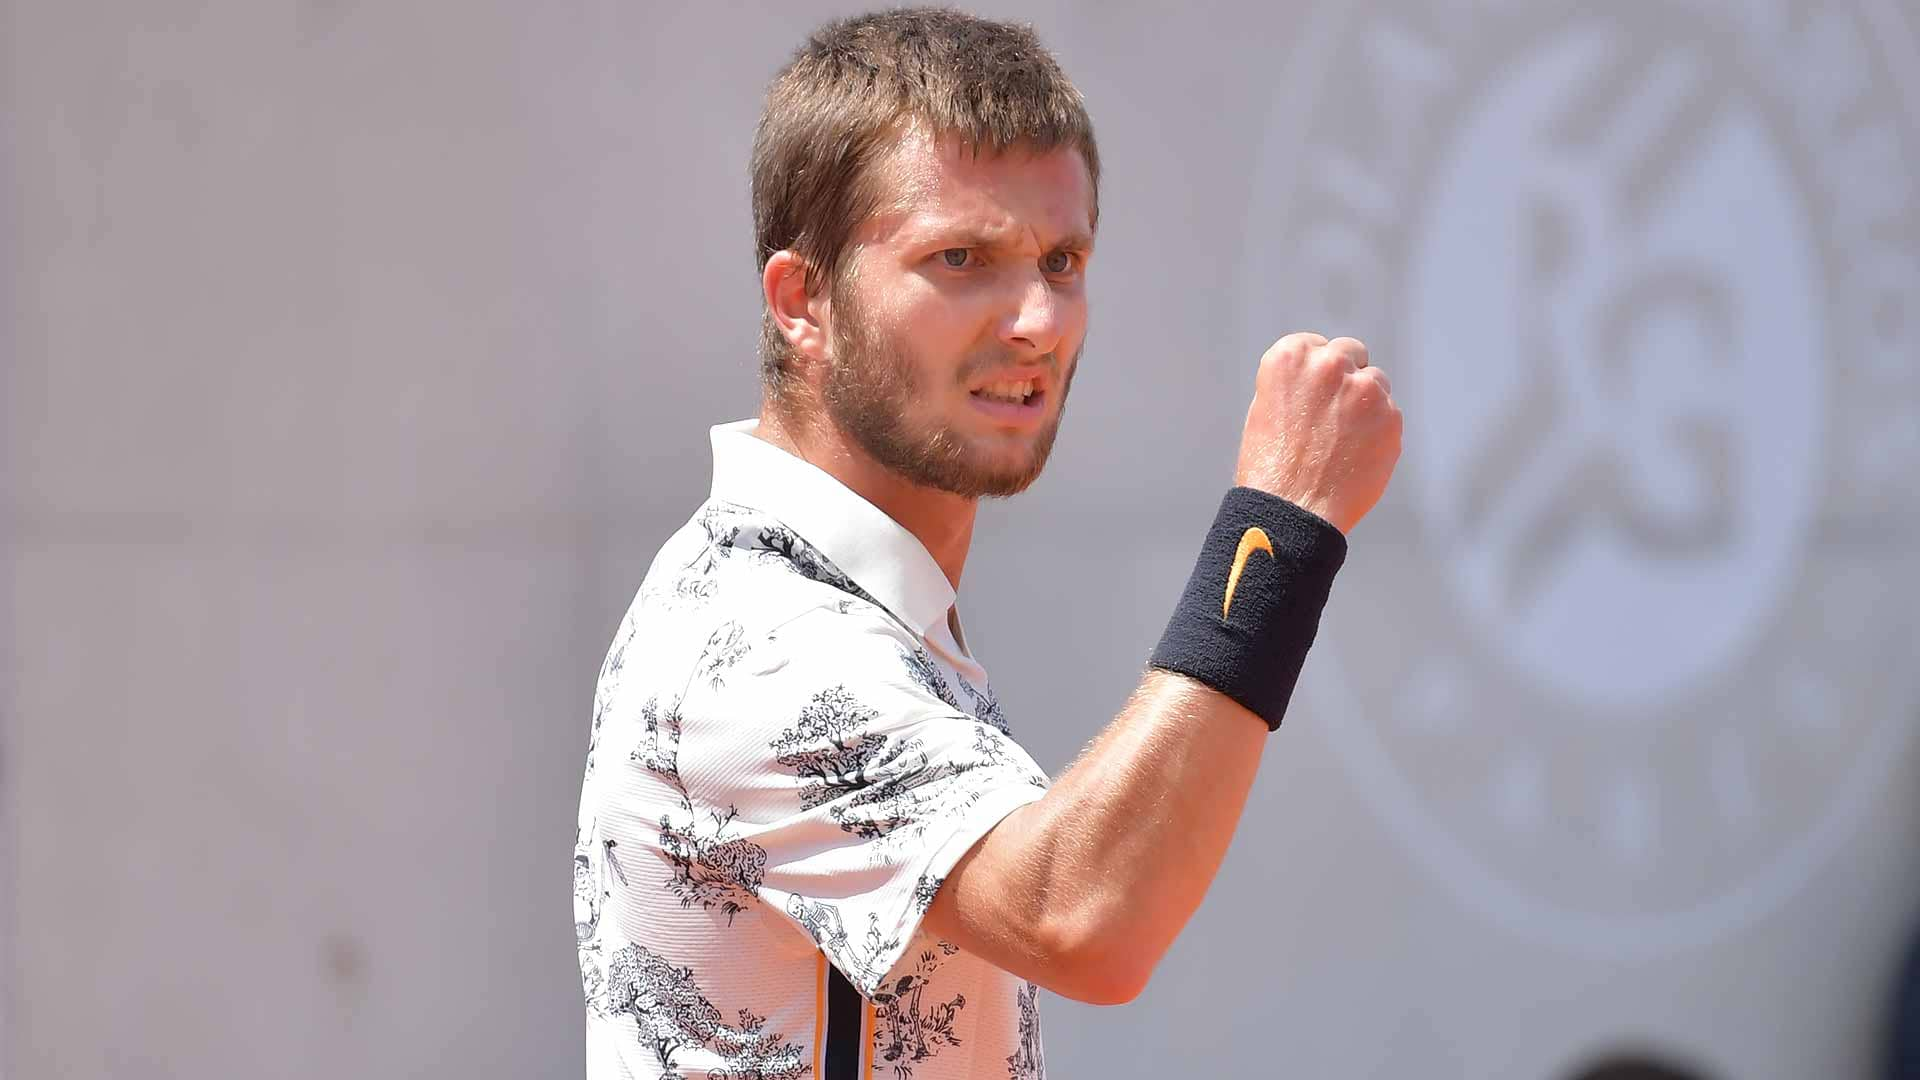 France's Corentin Moutet is playing at Roland Garros, his home Grand Slam